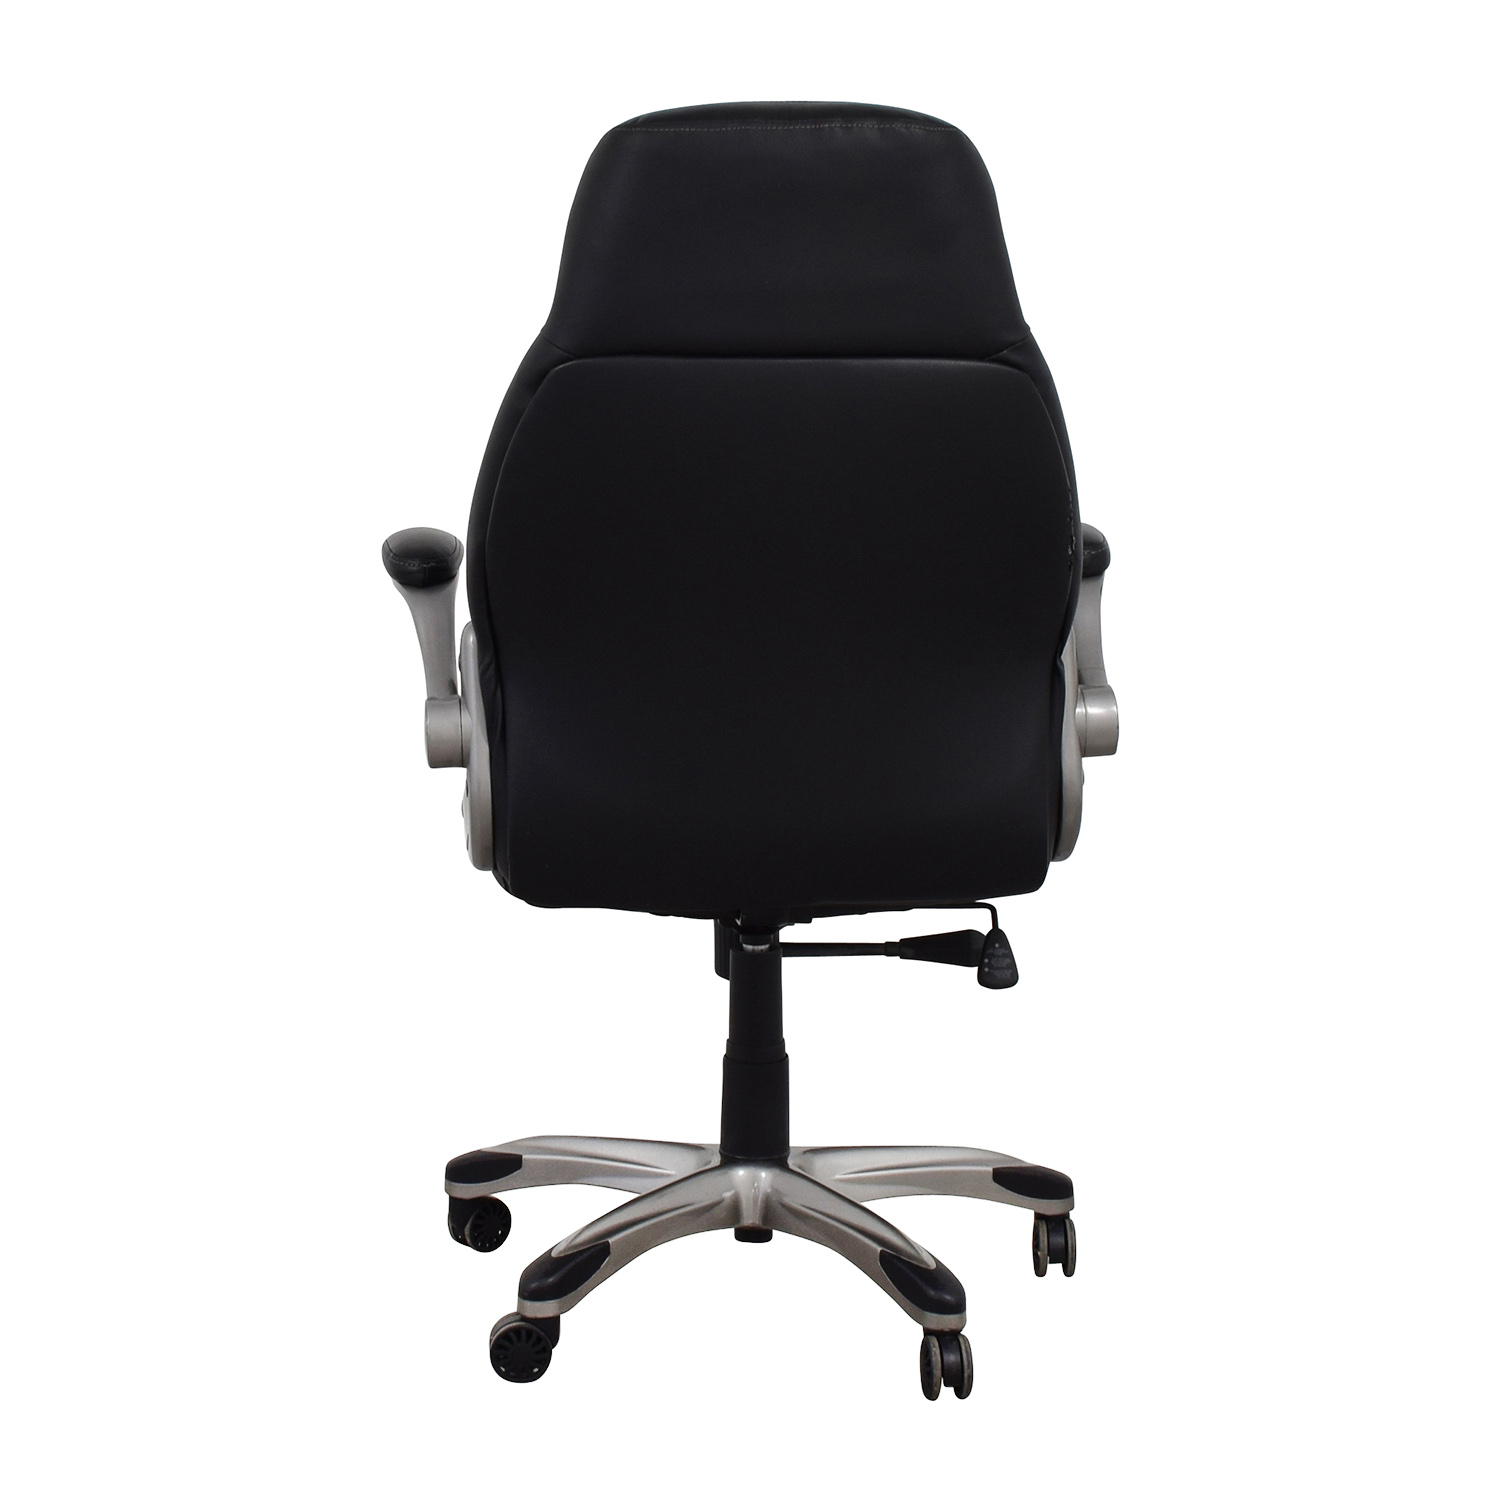 Staples Staples Torrent High-Back Executive Chair in Black price